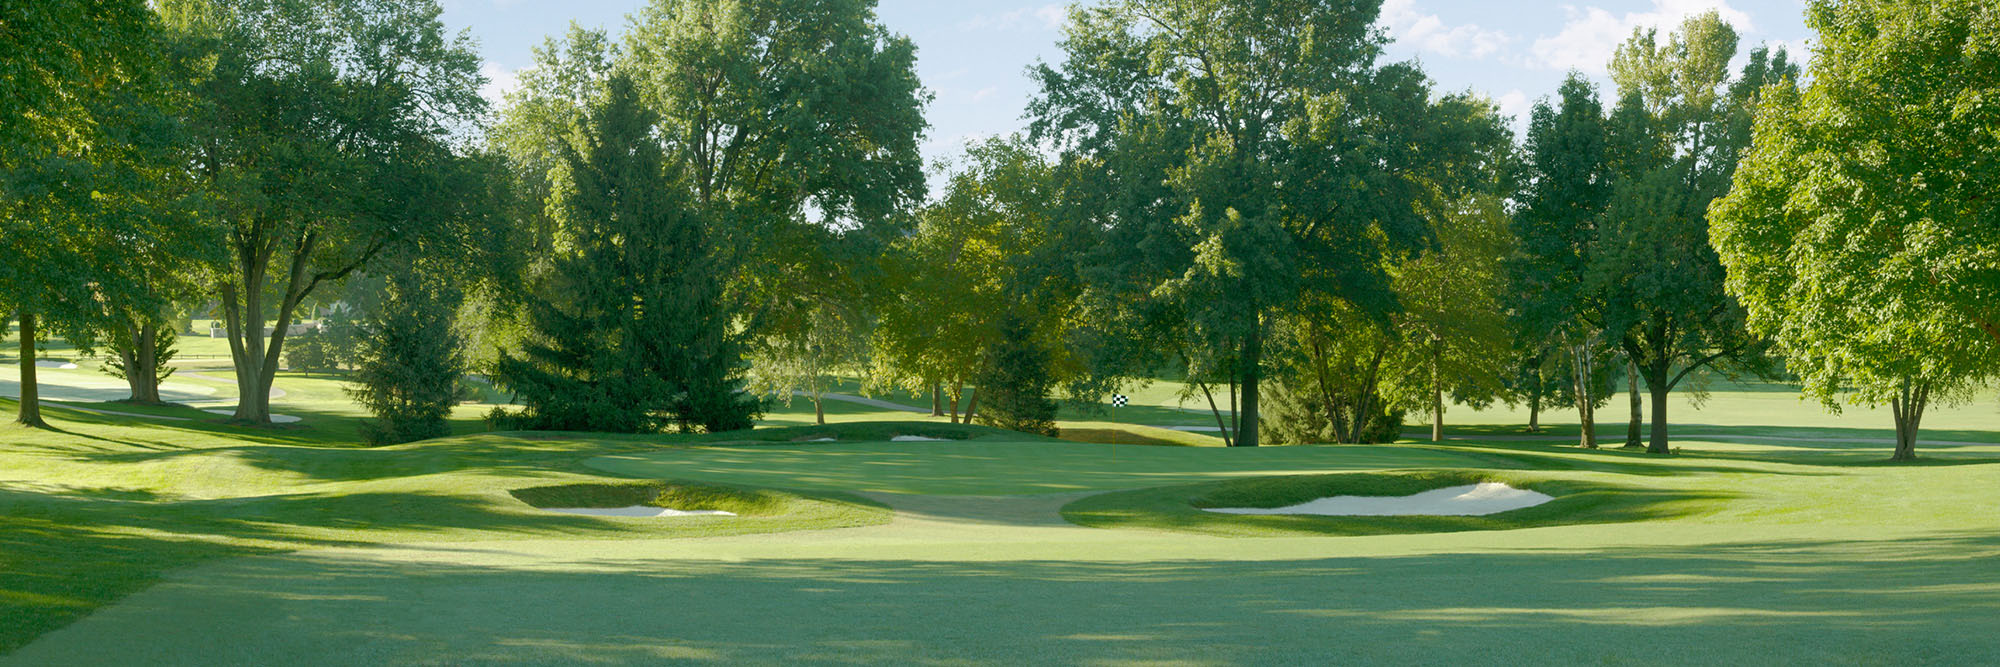 Golf Course Image - Twin Oaks Country Club No. 7